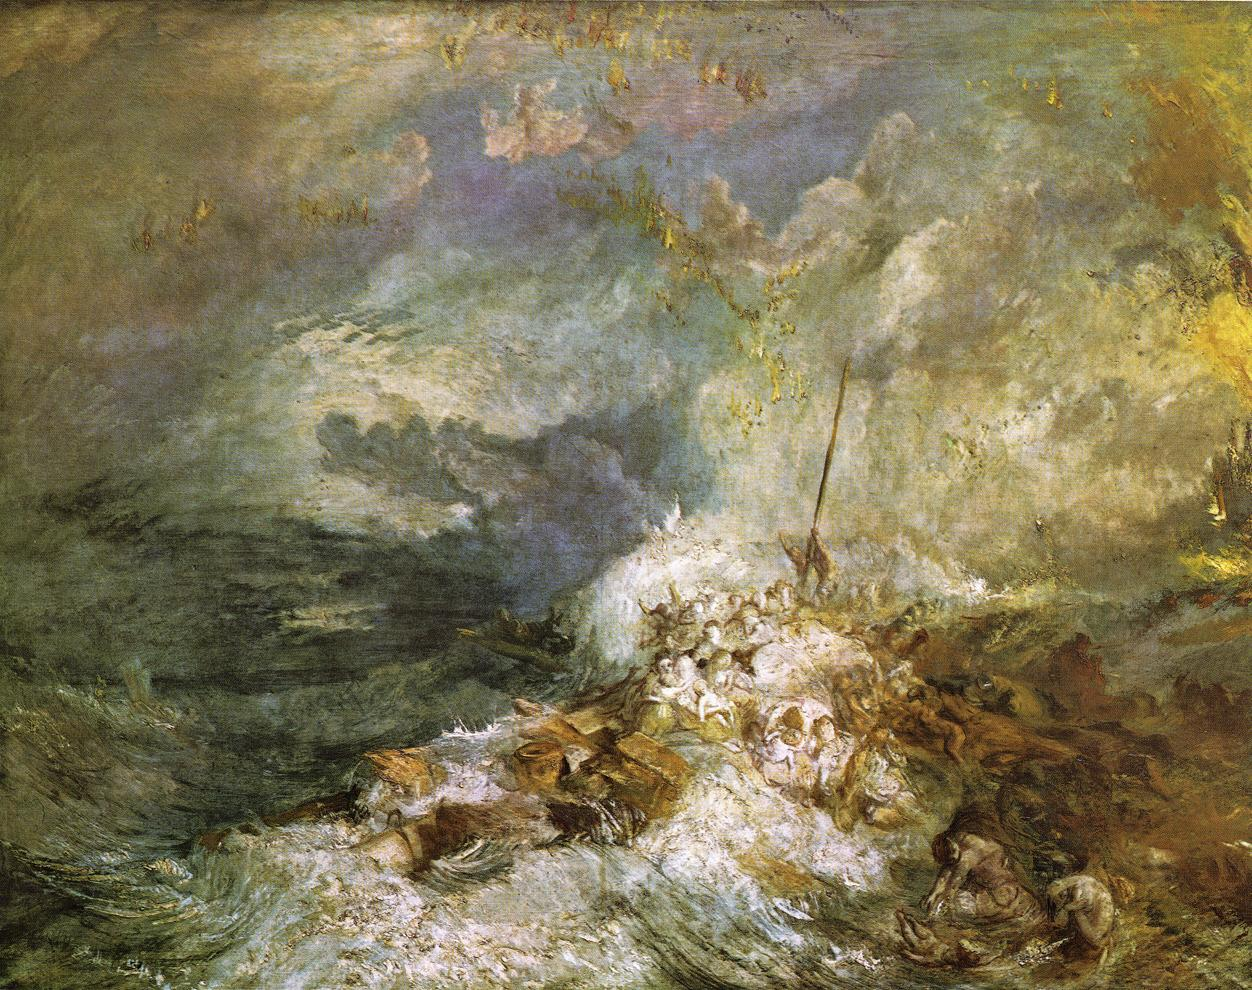 A Disaster at Sea 1835